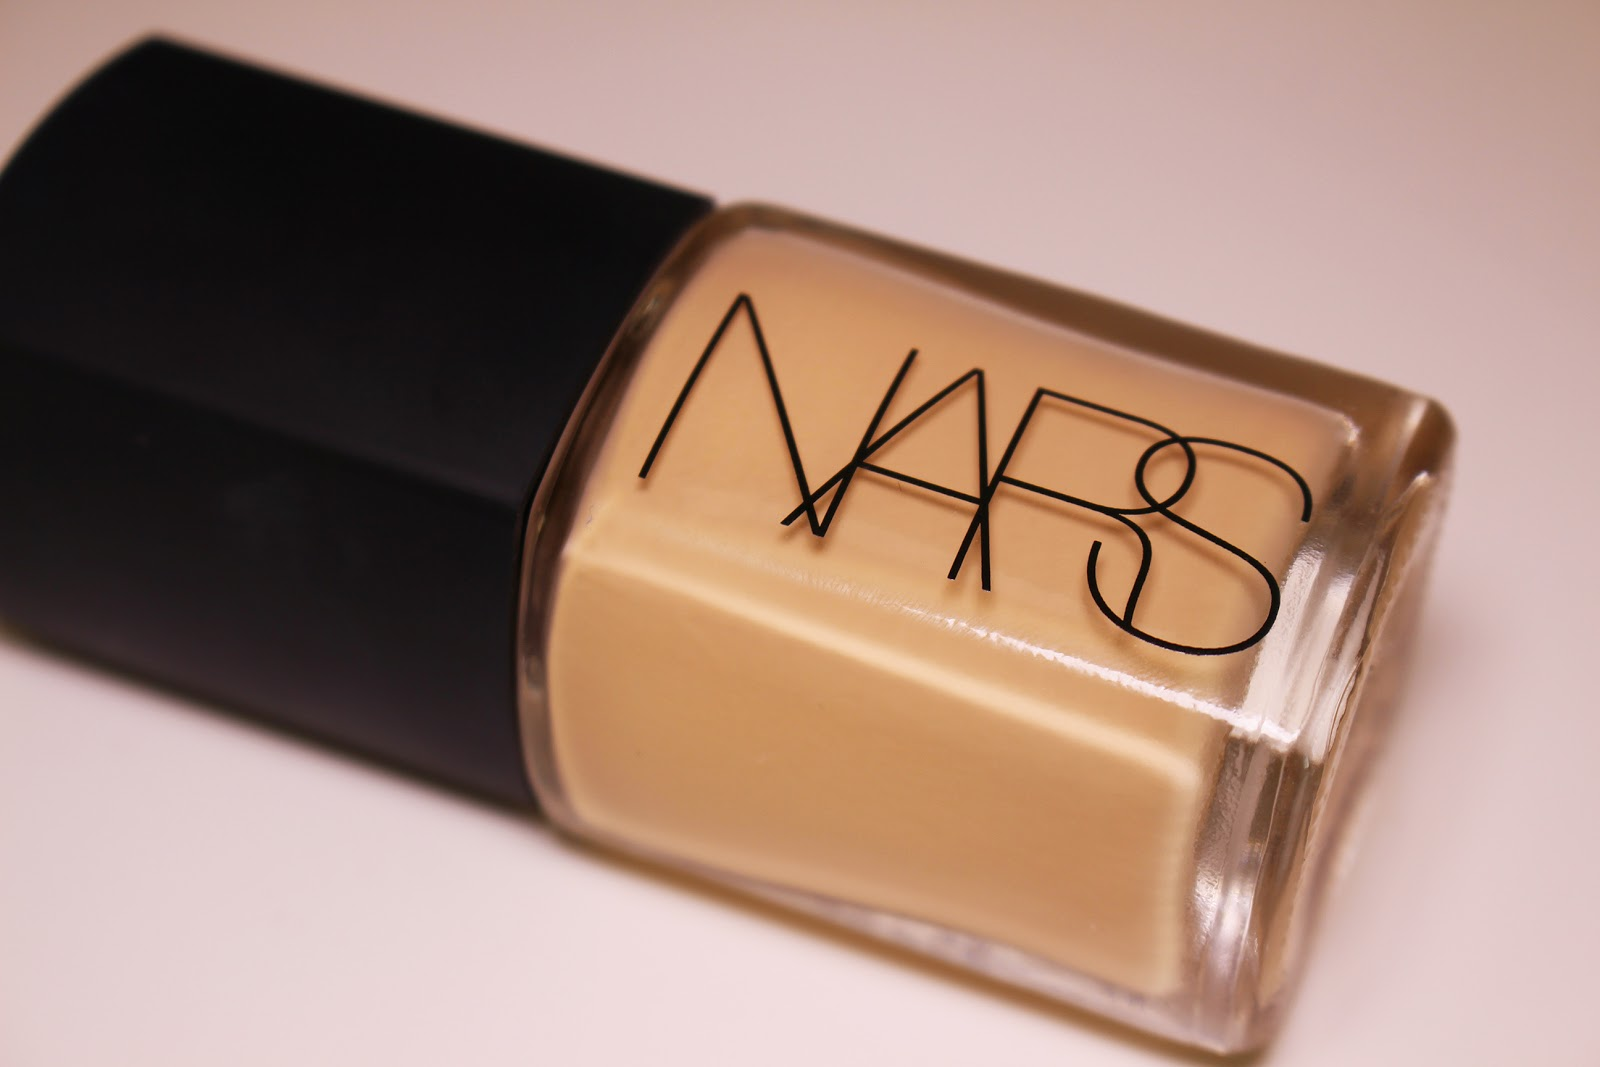 NARS Sheer Glow Foundation | Review + demo